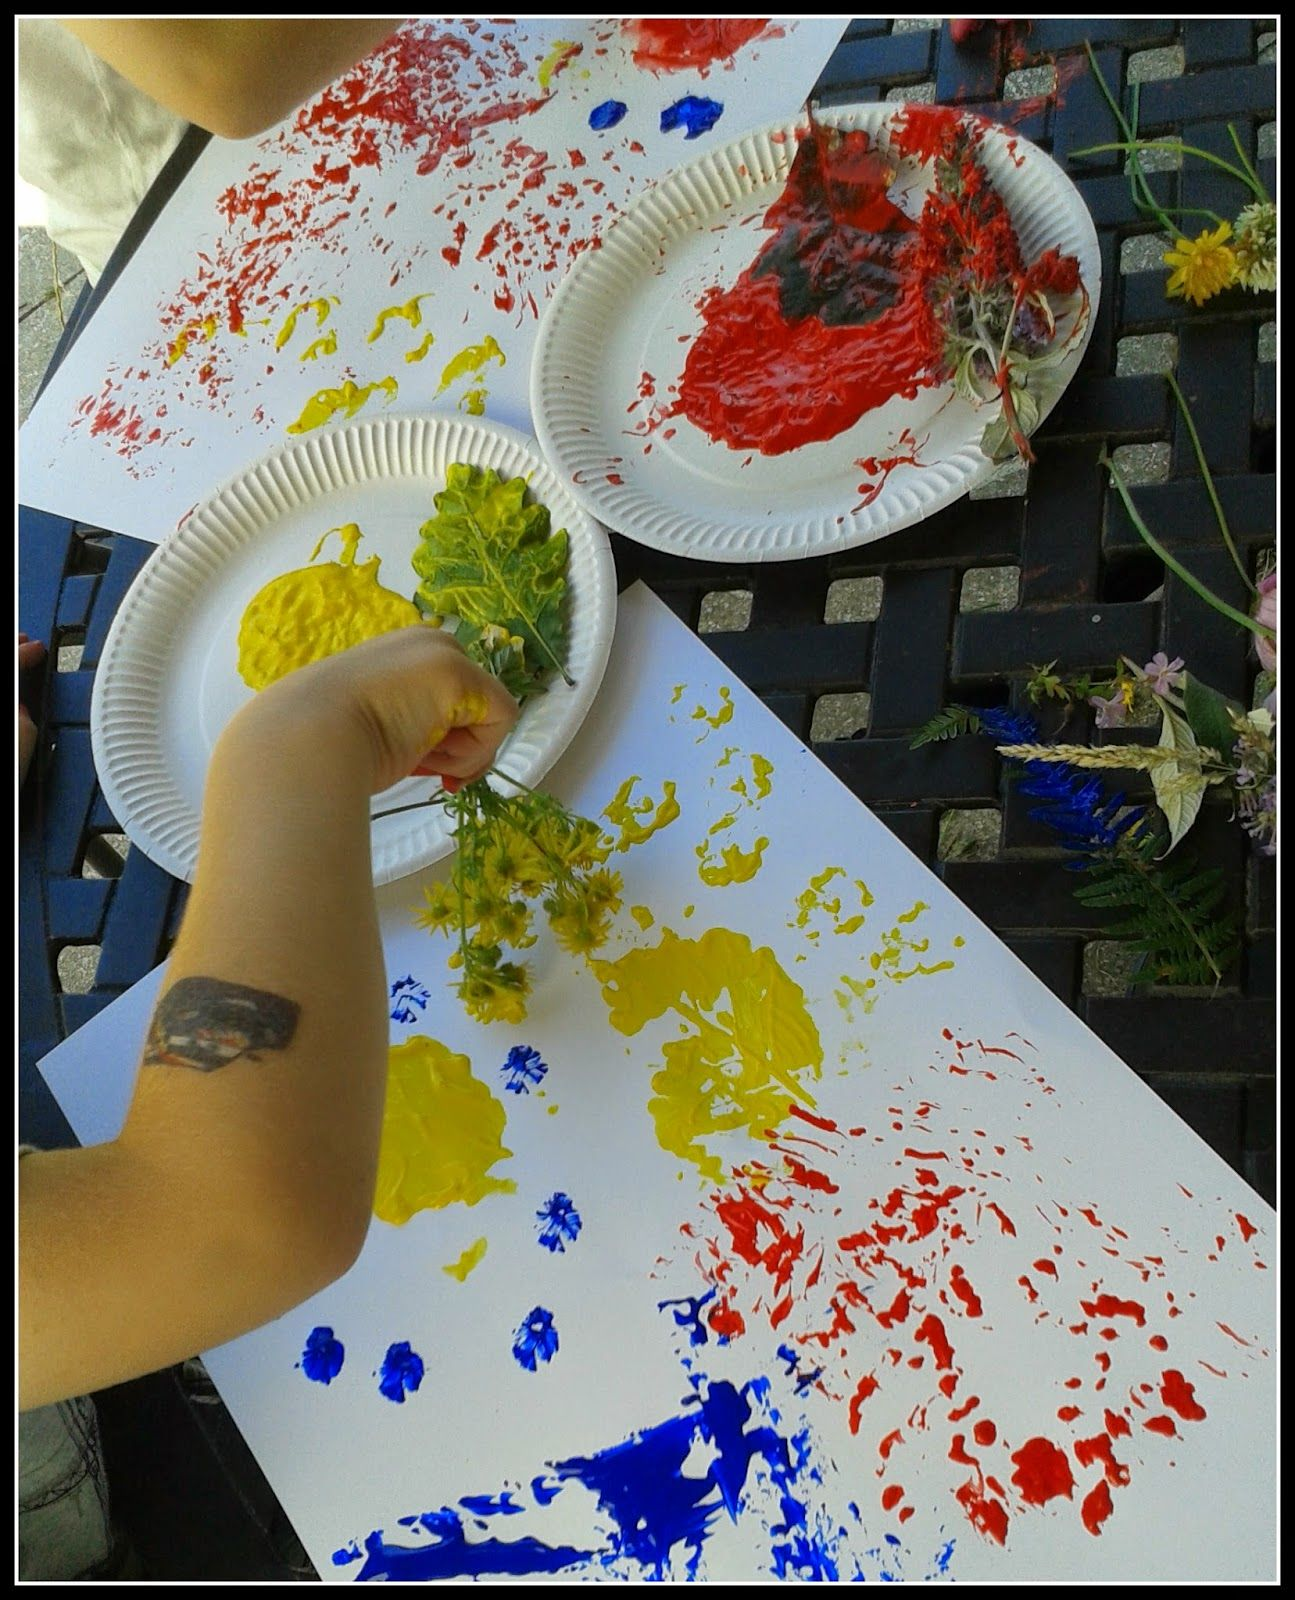 Nature walk painting with flowers